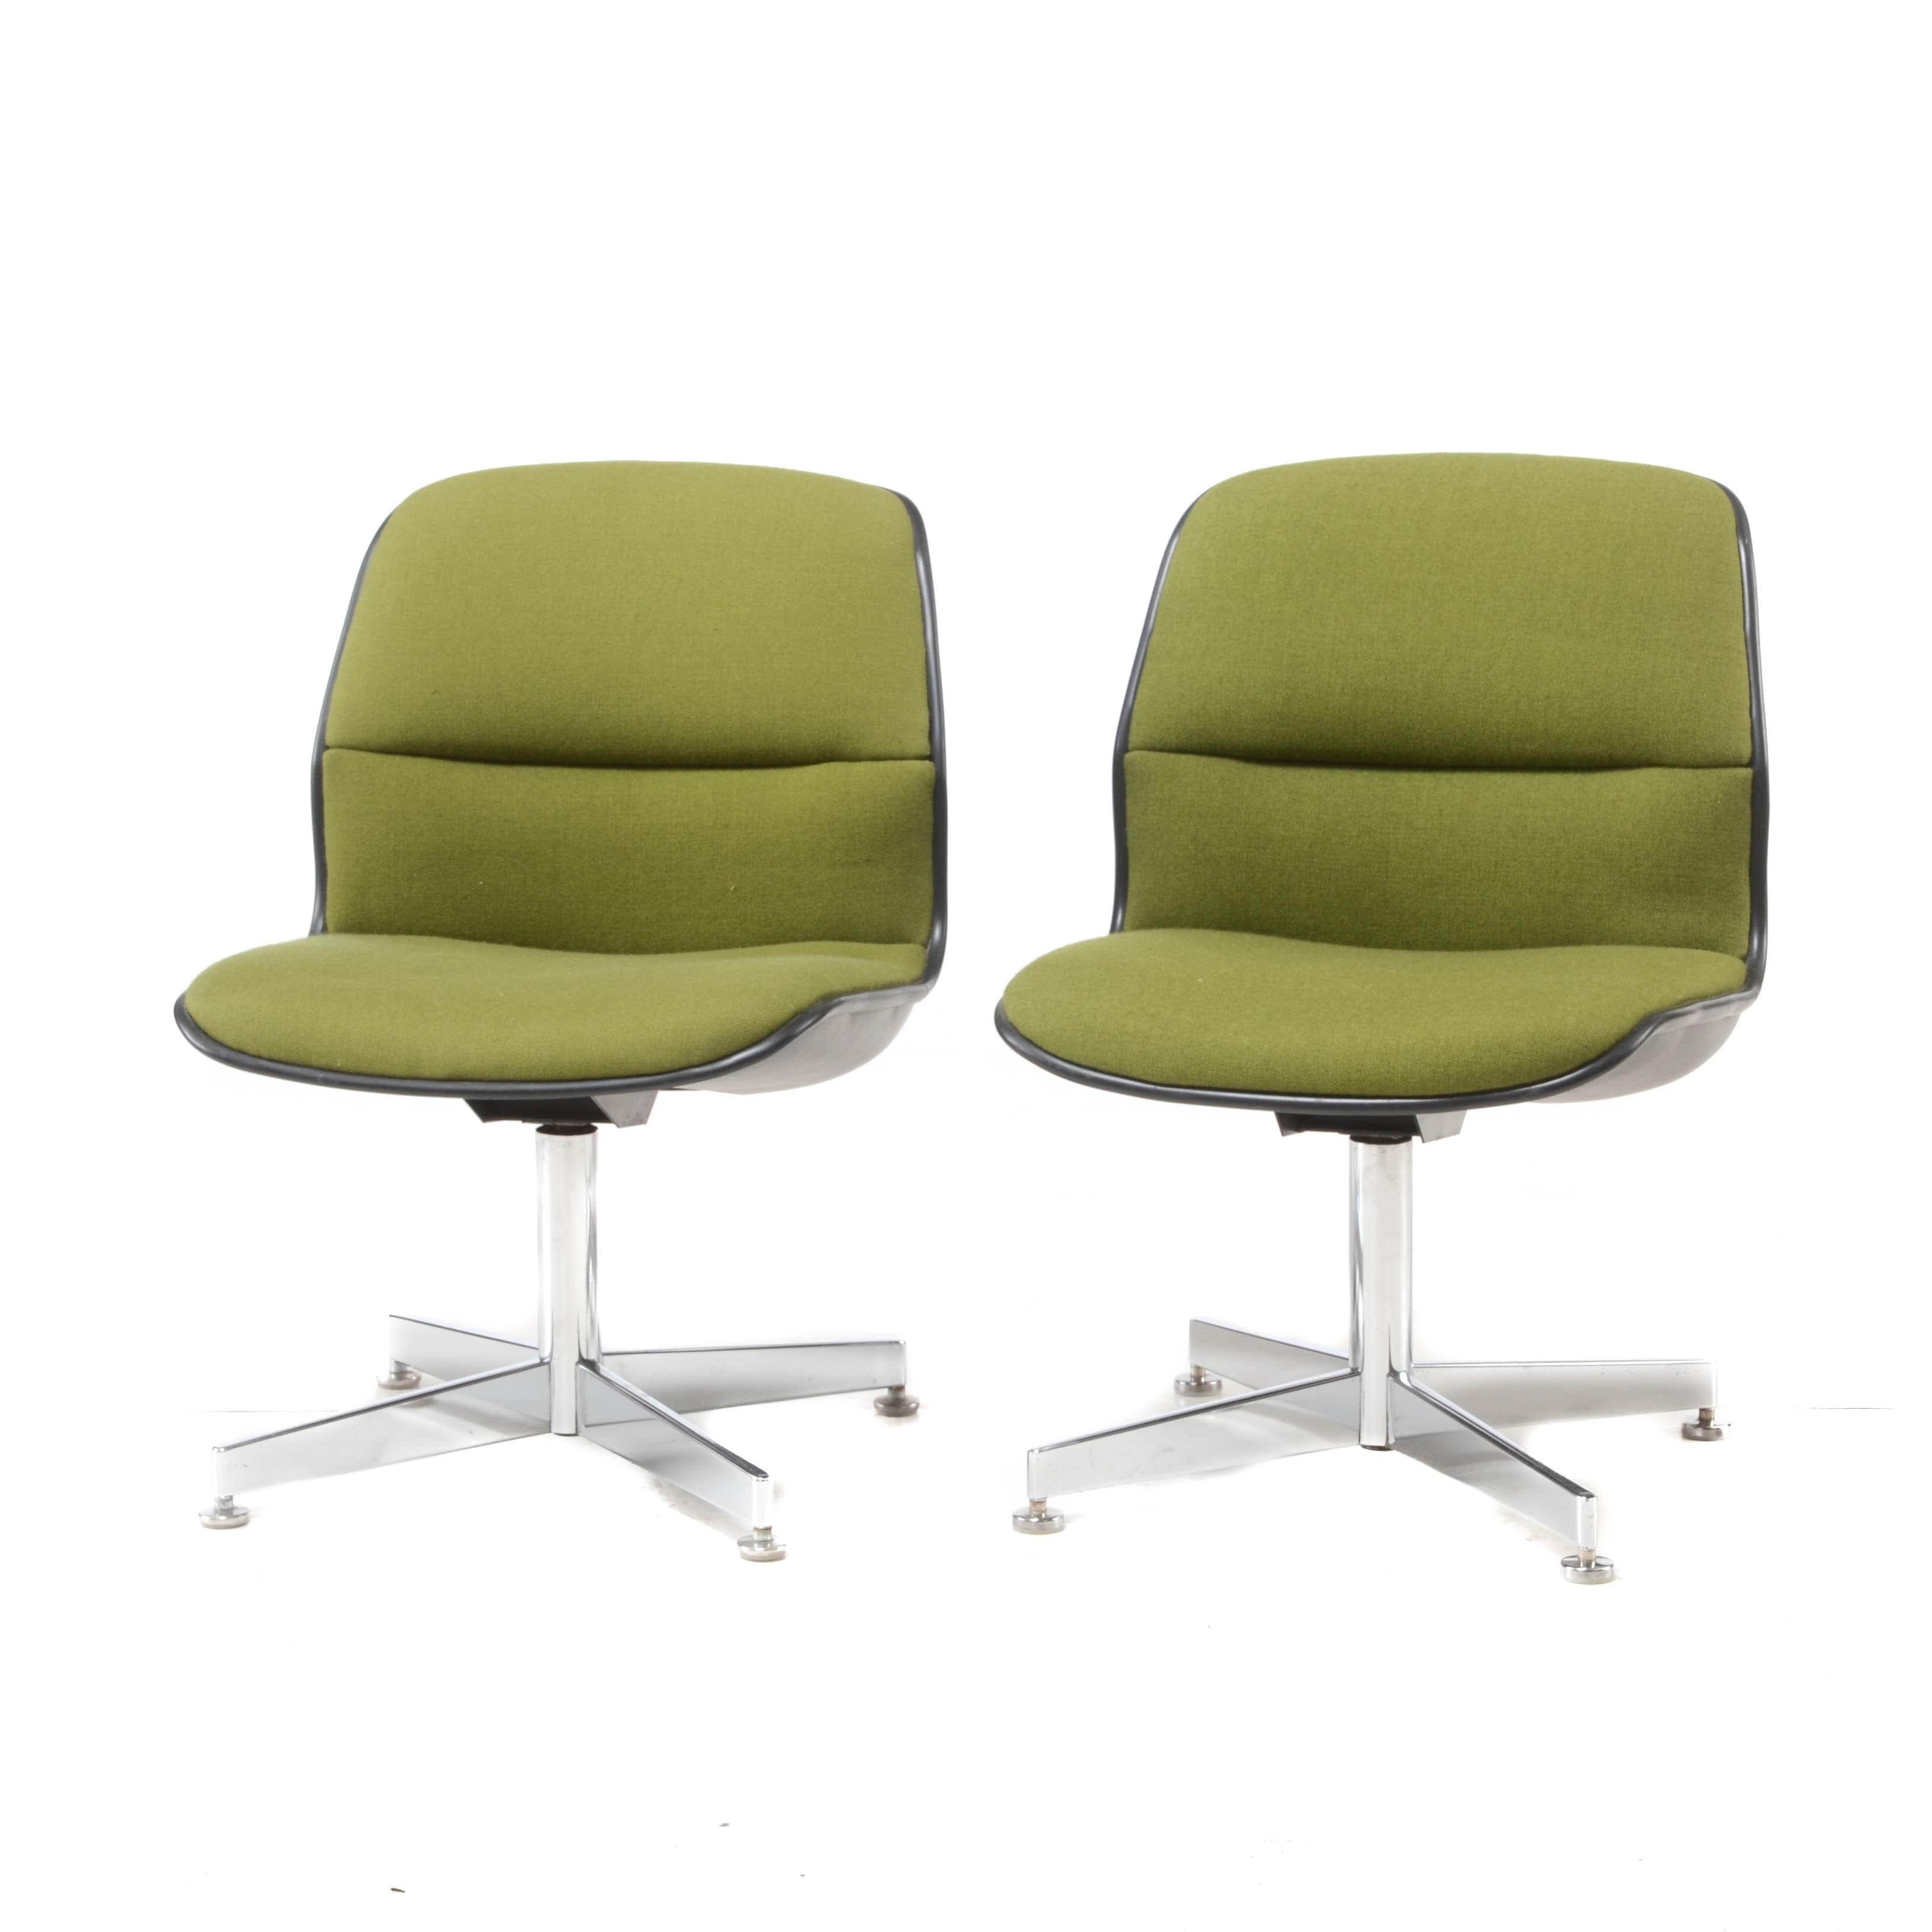 Pair of All-Steel Office Chairs